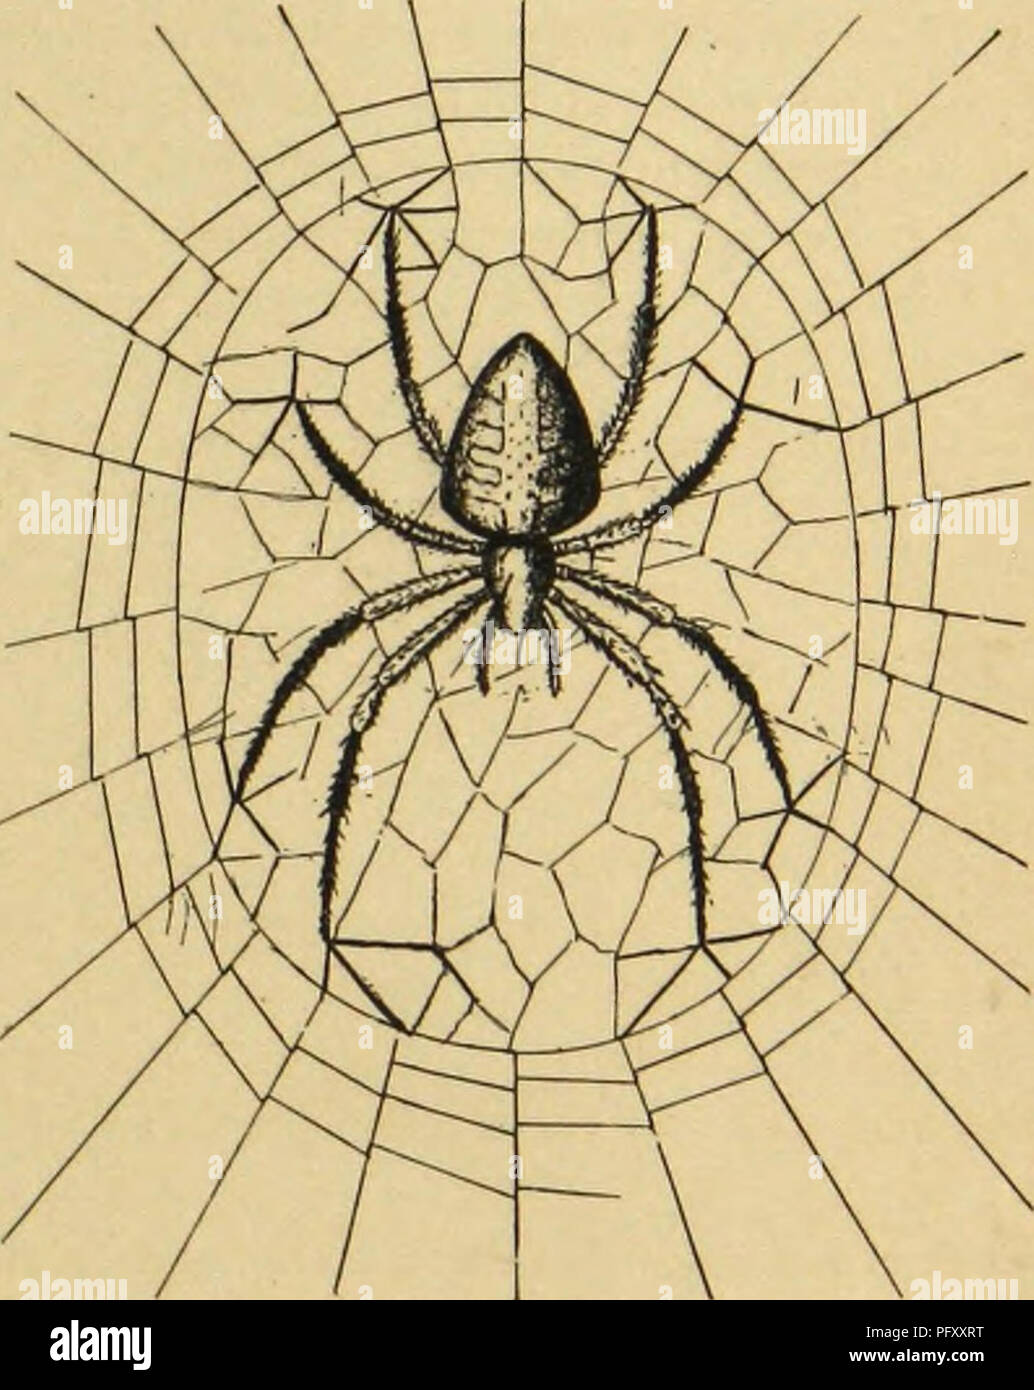 . American spiders and their spinning work. A natural history of the orbweaving spiders of the United States, with special regard to their industry and habits. Spiders. WEAVERS OF ROUND WEBS. 113 Head Down- ward Natural toward the web. The posture at the hub, therefore, is the natural one taken when, upon disturbance of tlie snare, the arancad runs down the trapline to tlie centre. Convenience and habit combine to fix the posture as we find it. Moreover, the majority of vertical orbwebs have the longer part of the spiral surface available for capture of insects below the median horizontal line - Stock Image